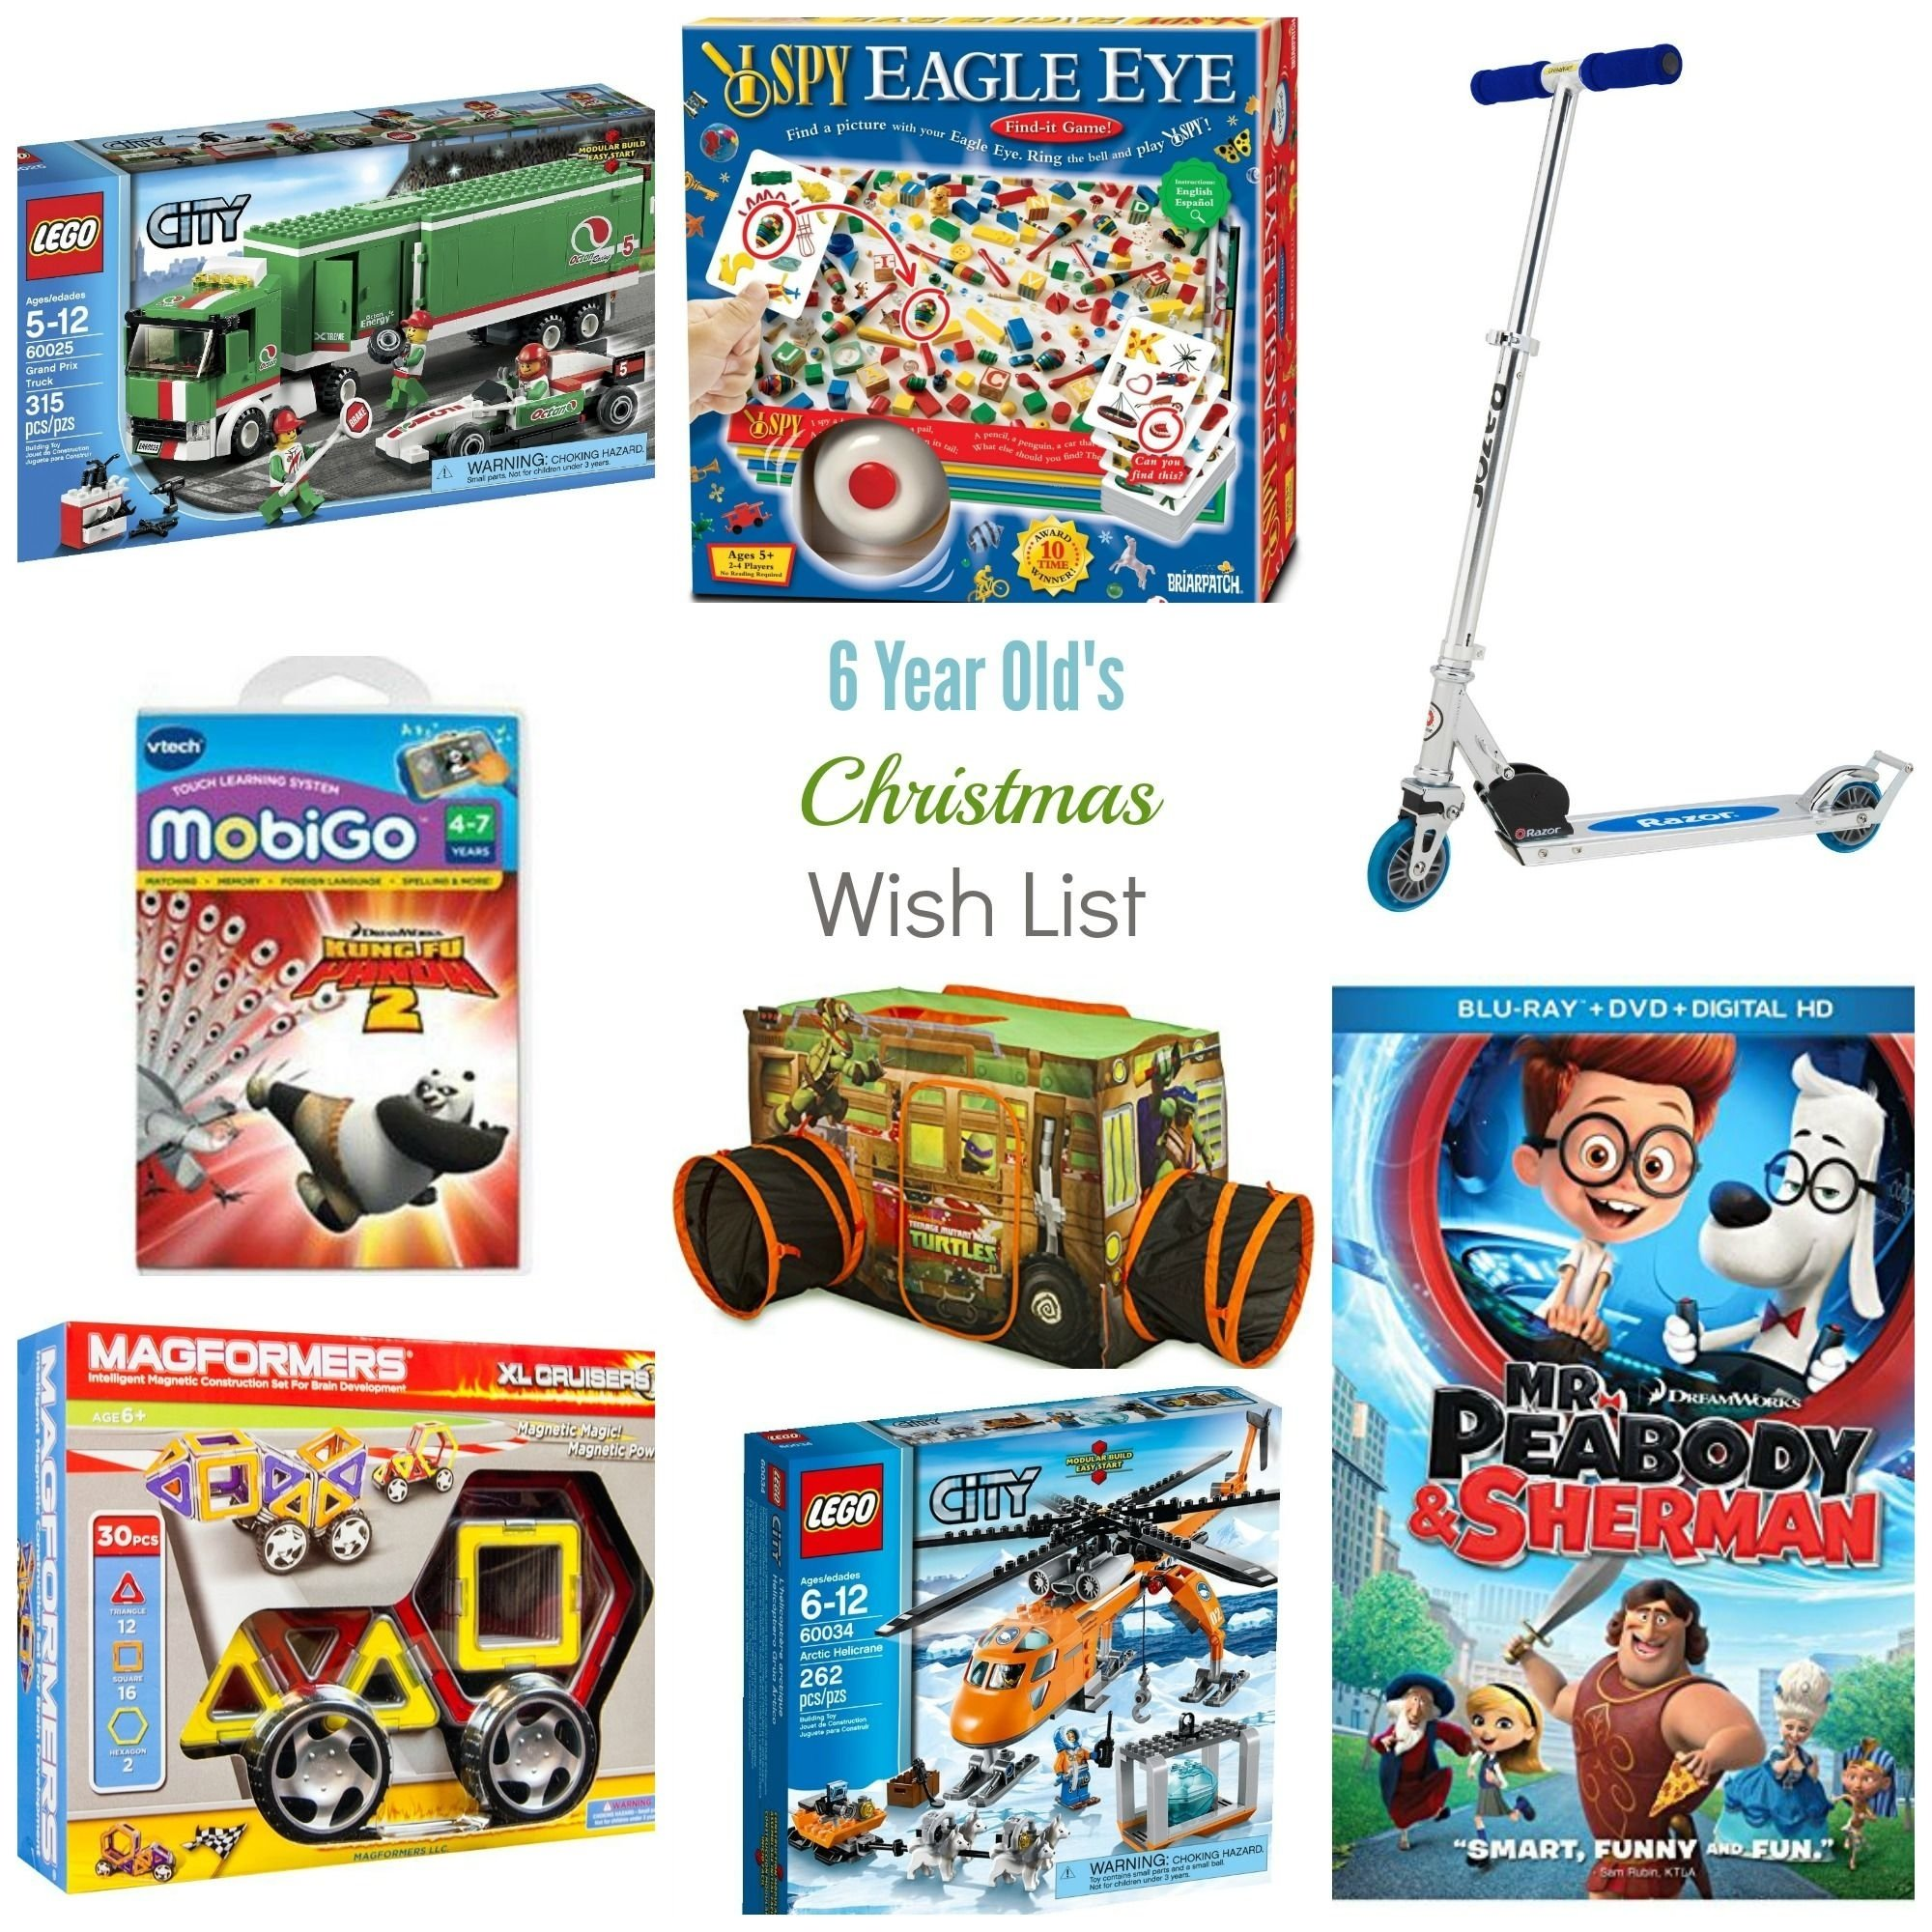 10 Fashionable Gift Idea For 6 Year Old Boy Christmas Wish List